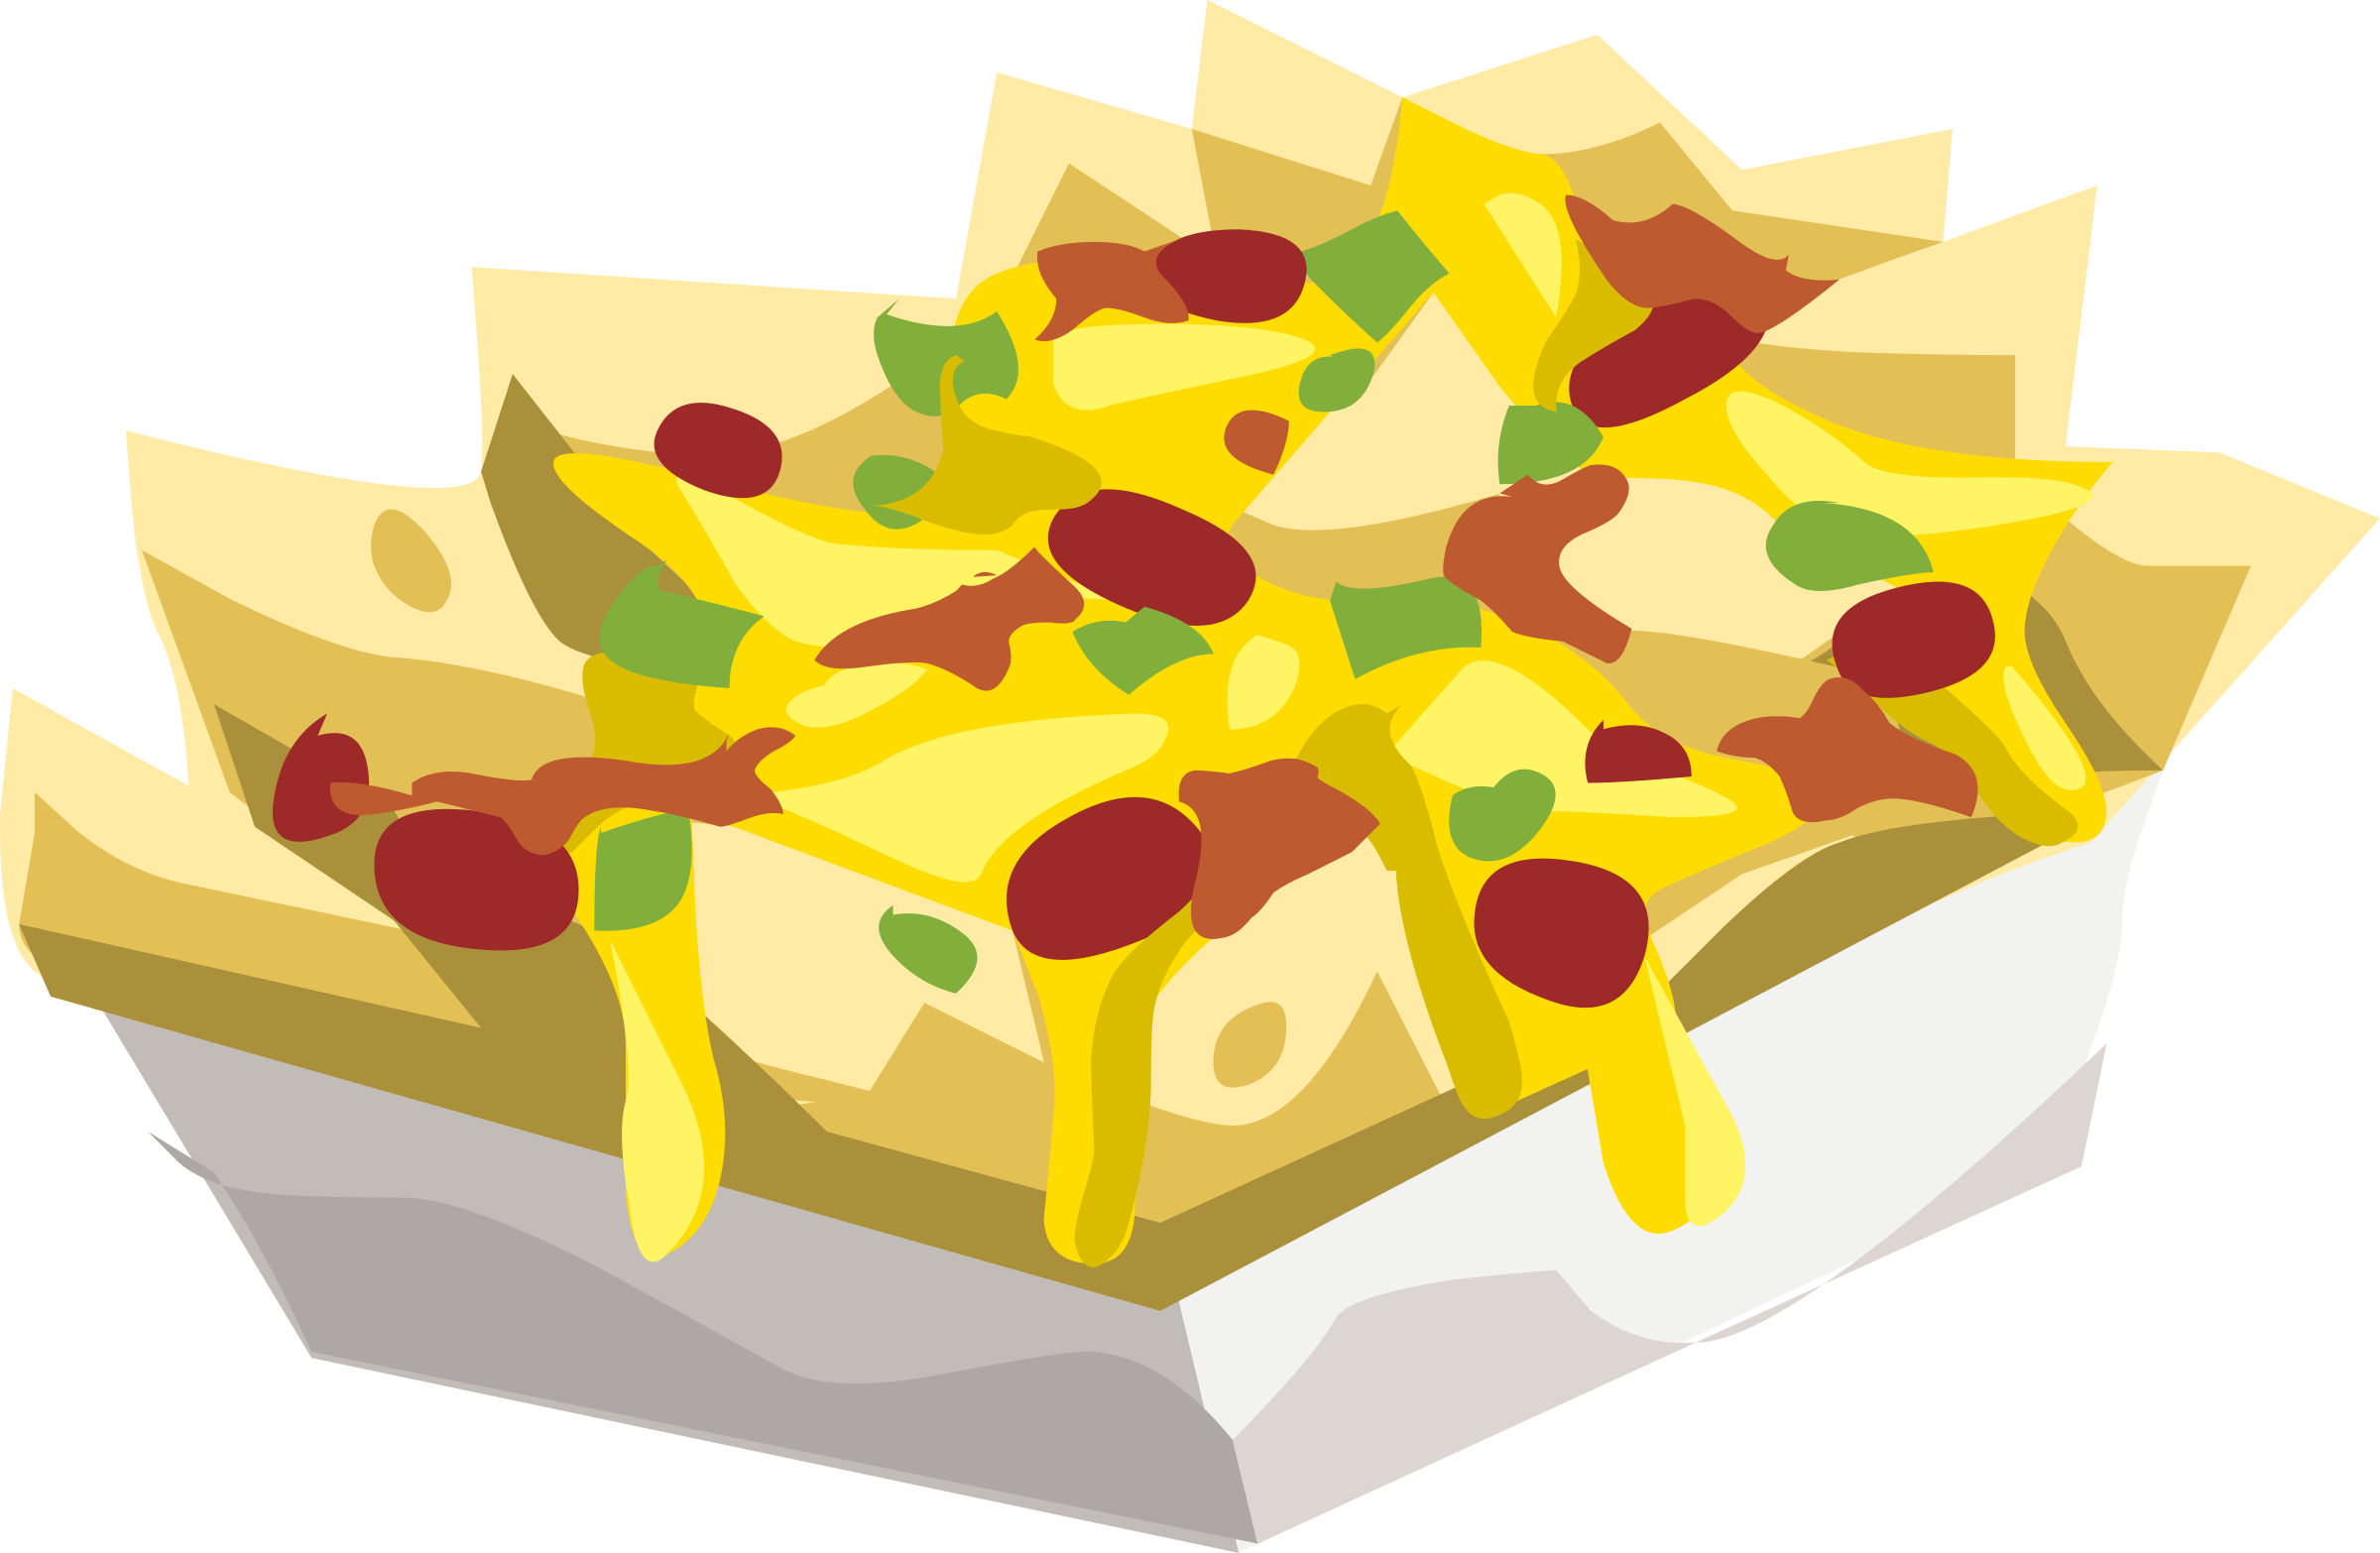 Nachos big image png. Hungry clipart food